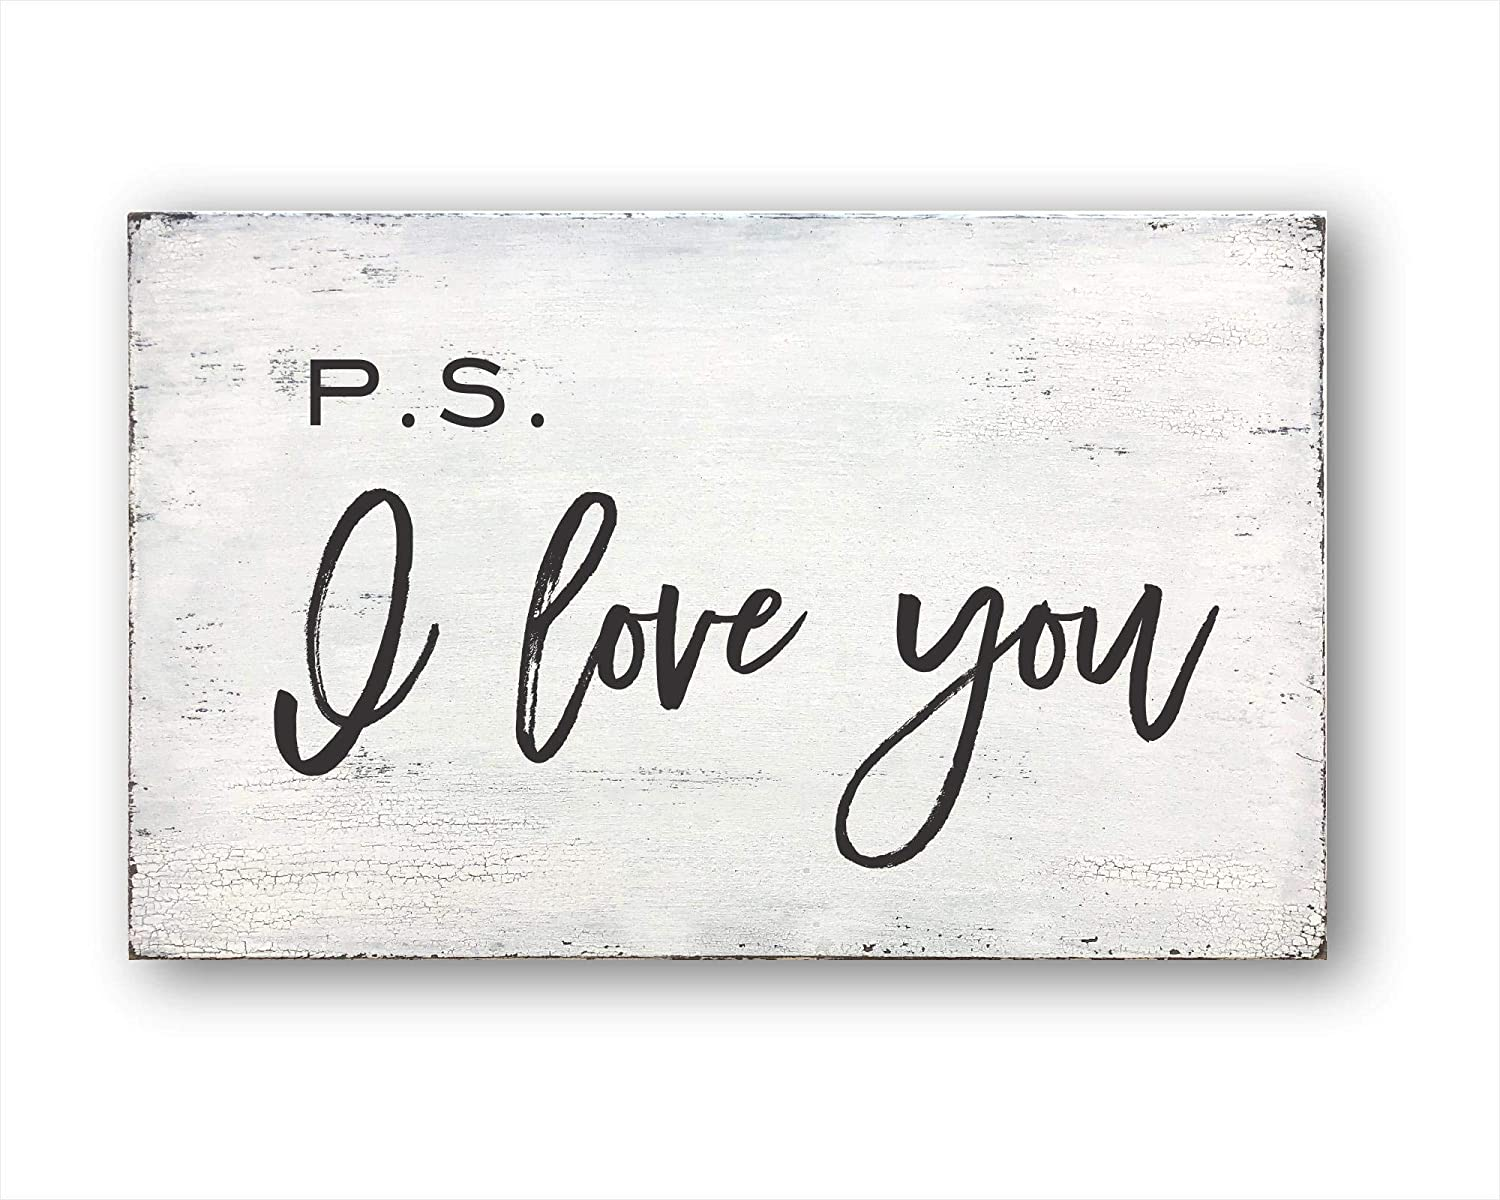 DKISEE P.S. I Love You, Housewarming Gift, Farmhouse Decor, Rustic Home Decor Decorative Wood Sign - Farmhouse Wall Decor 3.9x7.9 inches